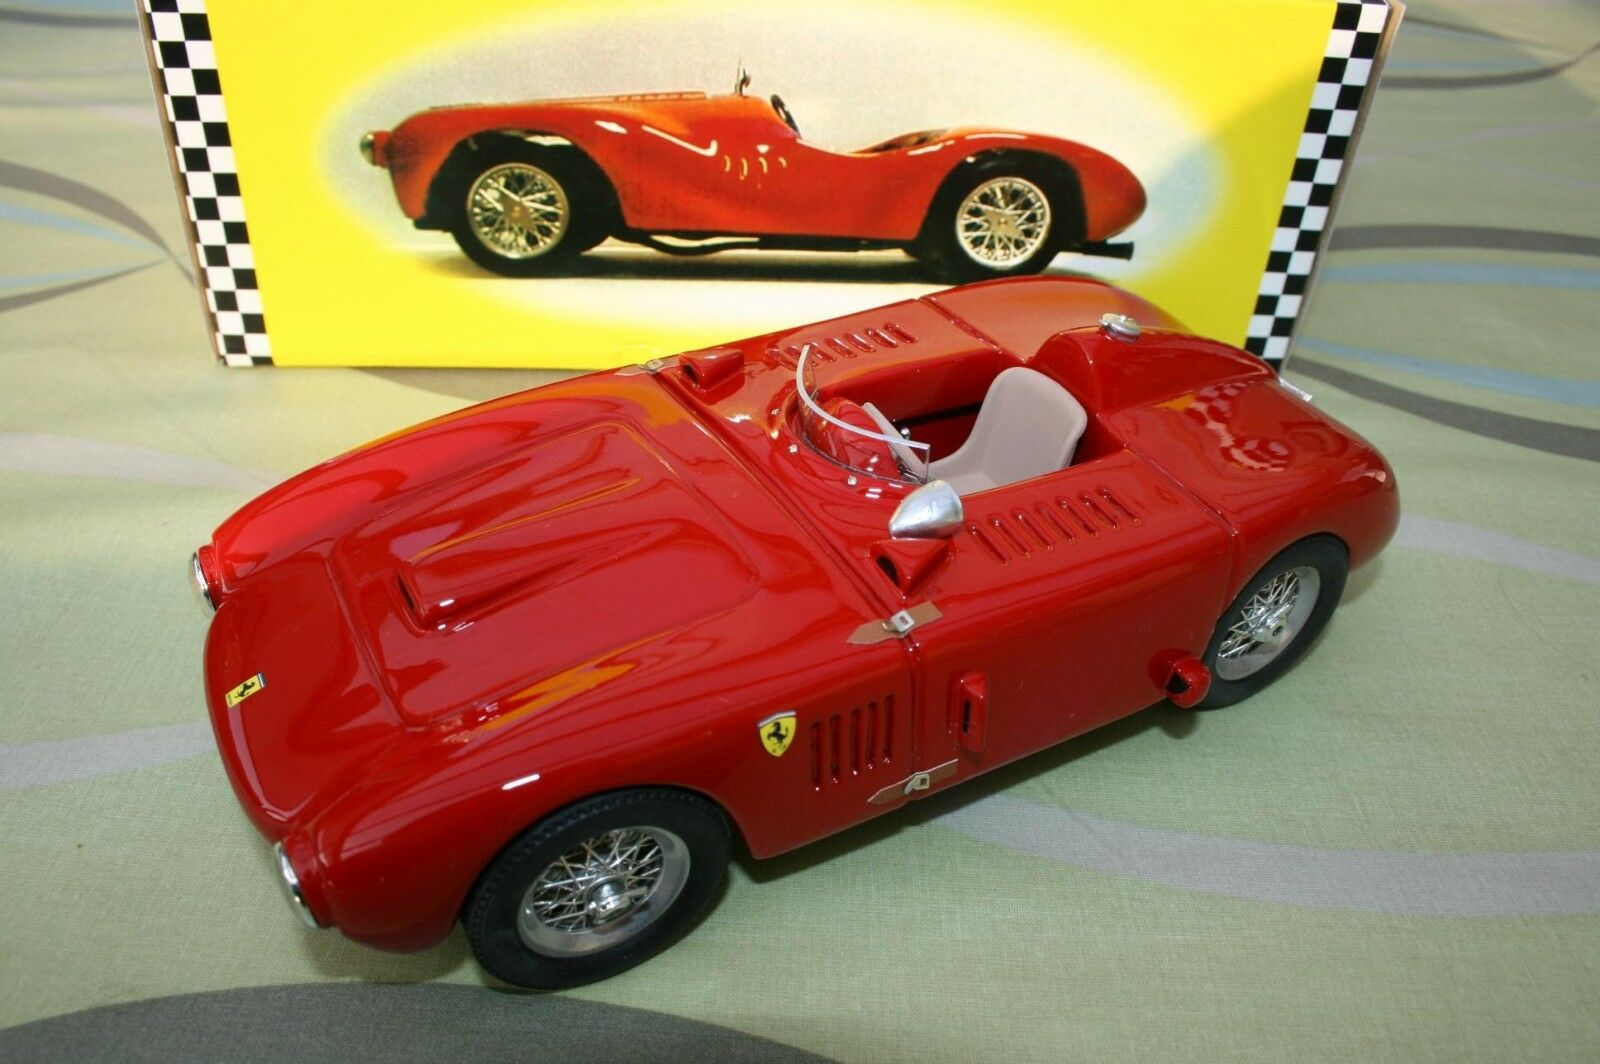 Ferrari red Model 1 18 375 Plus New in original box 300 pieces